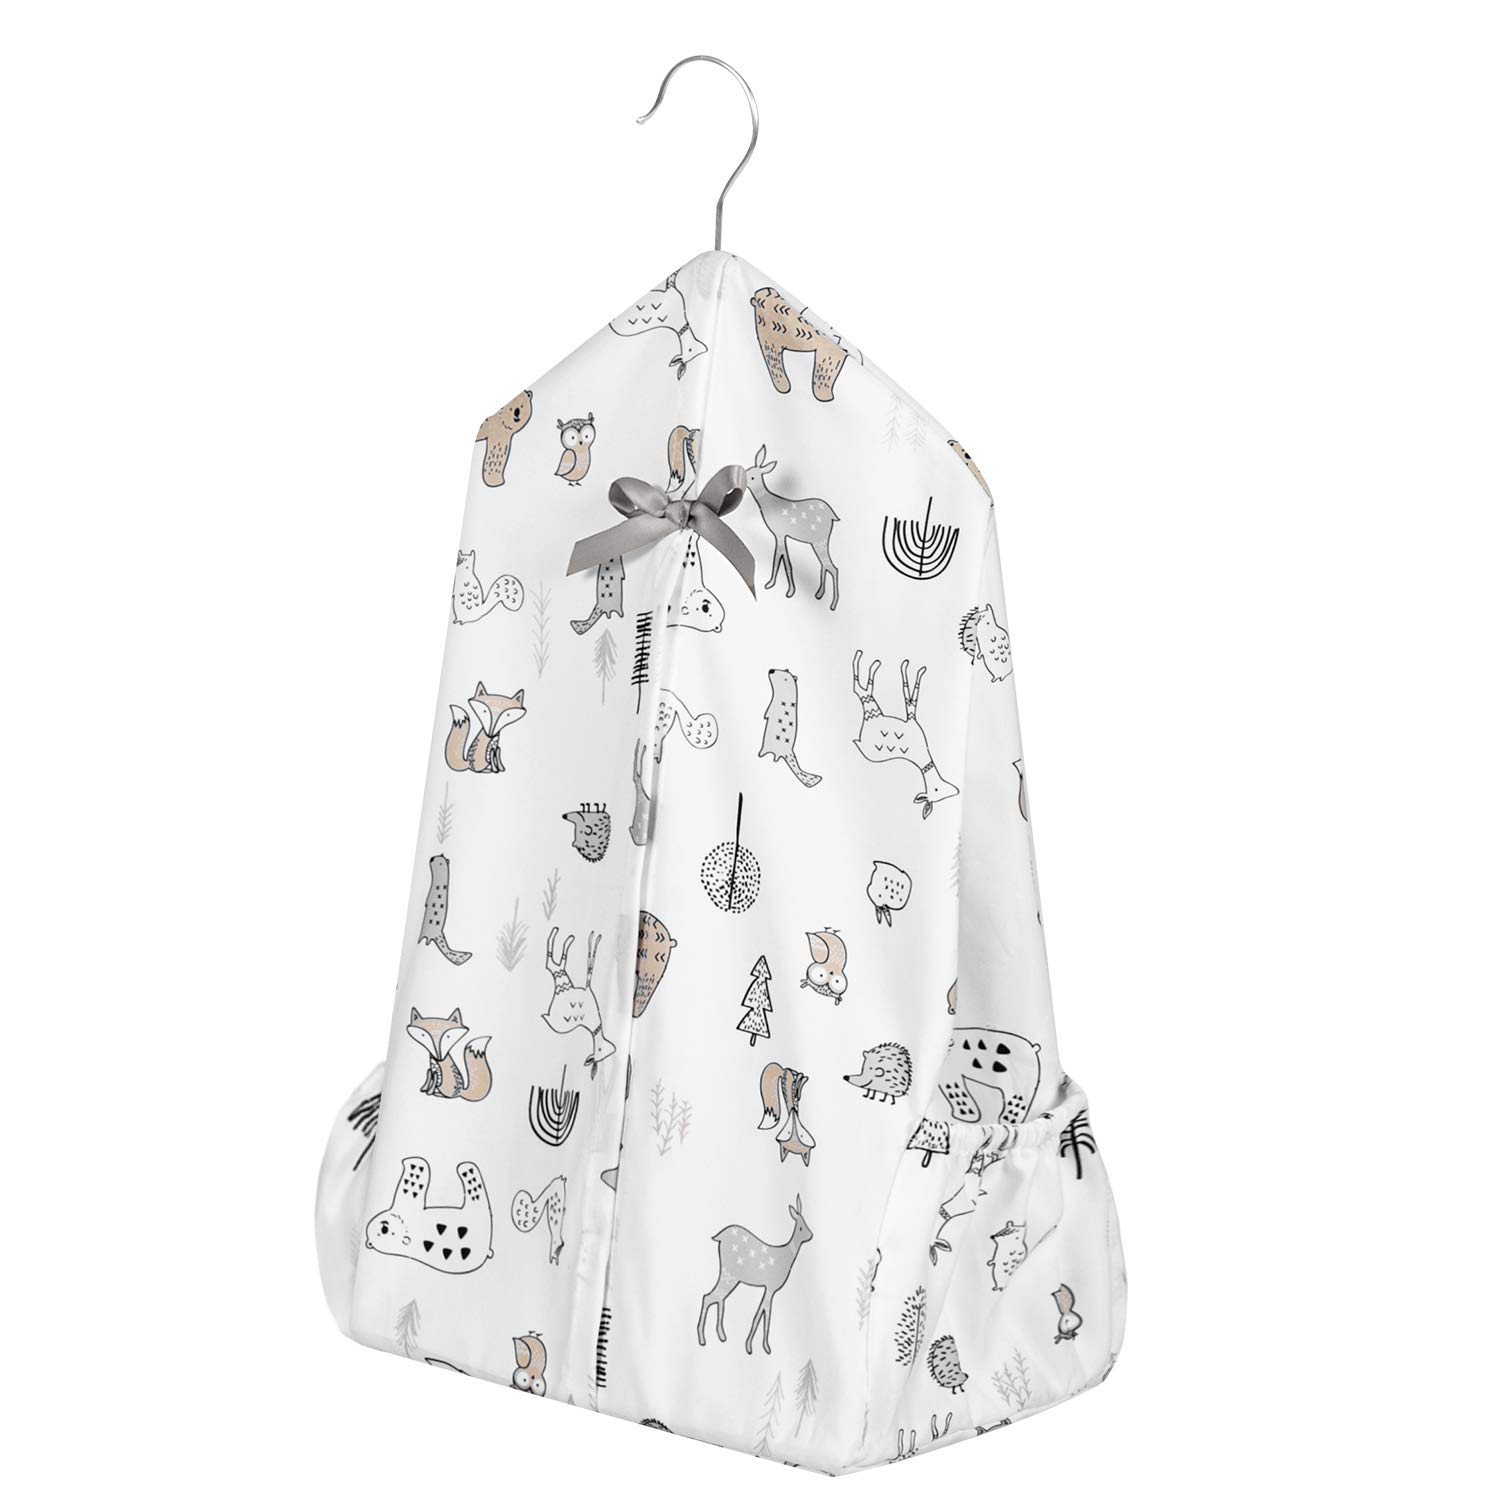 Upgraded Tillyou Hanging Nursery Diaper Storage Organizer Portable Foldable Diaper Caddy Stacker With Side Pockets For Crib Machine Washable And Roomy Space Diy 3 Parts Included Woodland Animals Baby